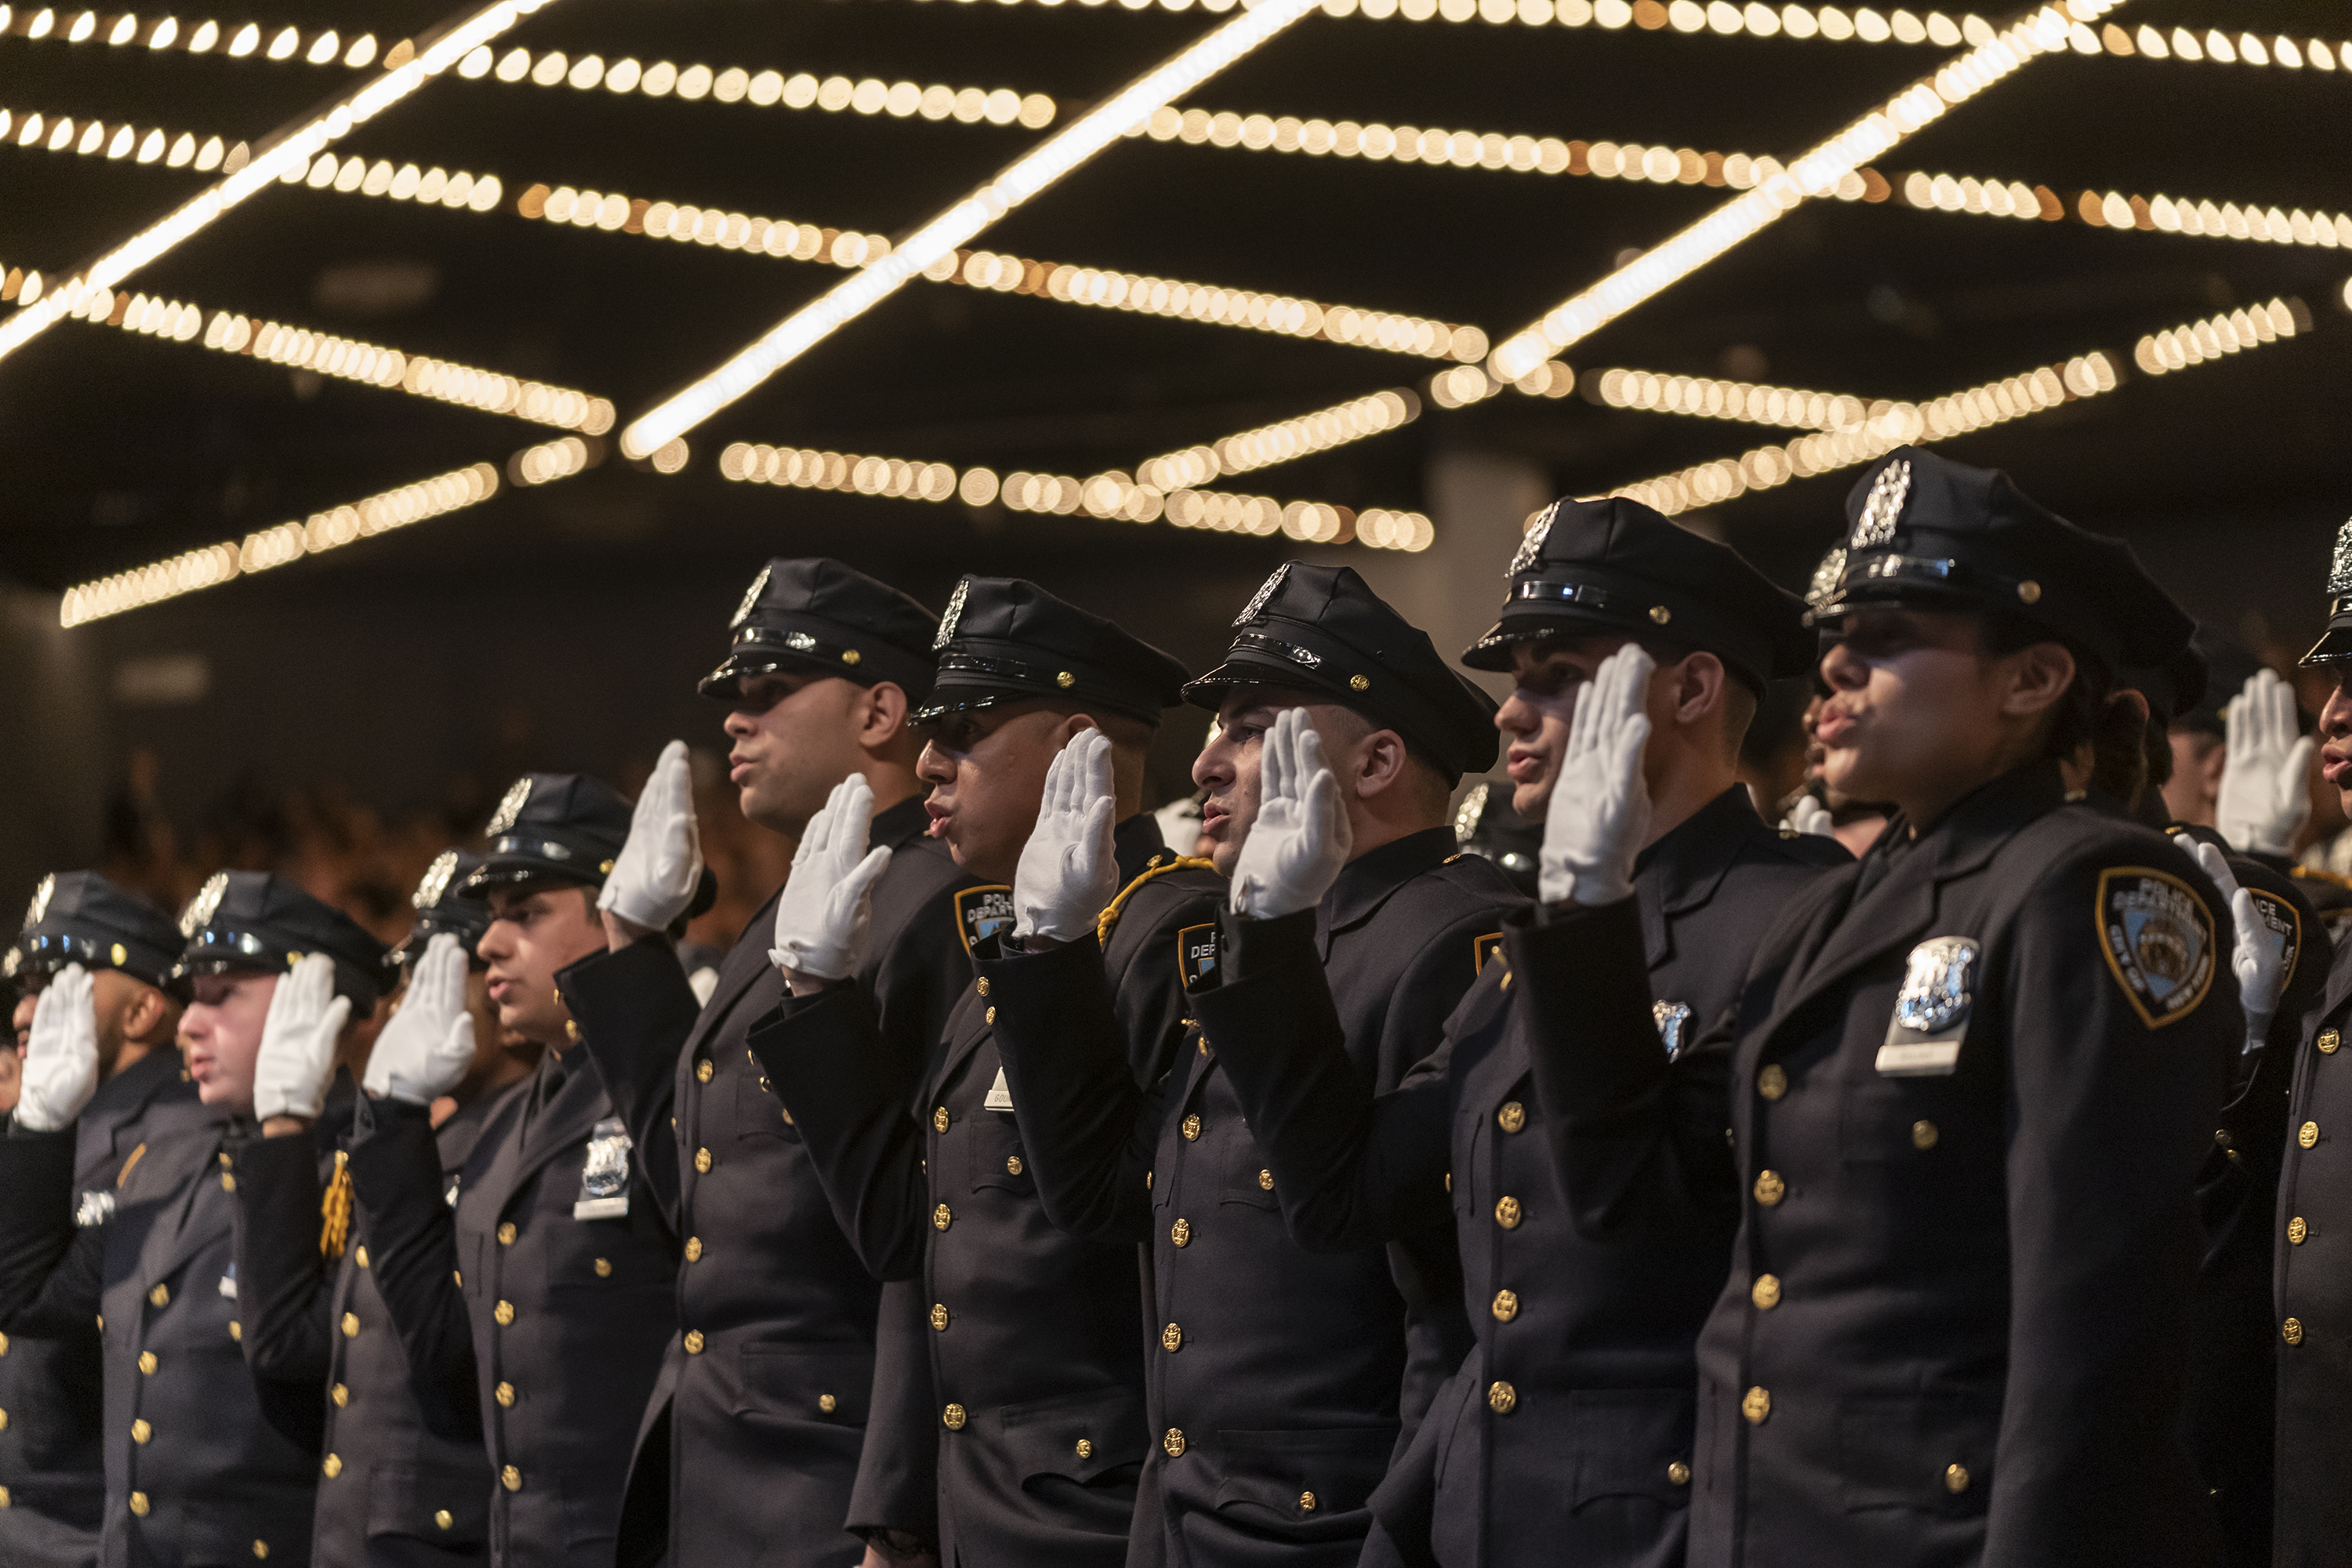 5 Reasons Police Officers Should Have College Degrees